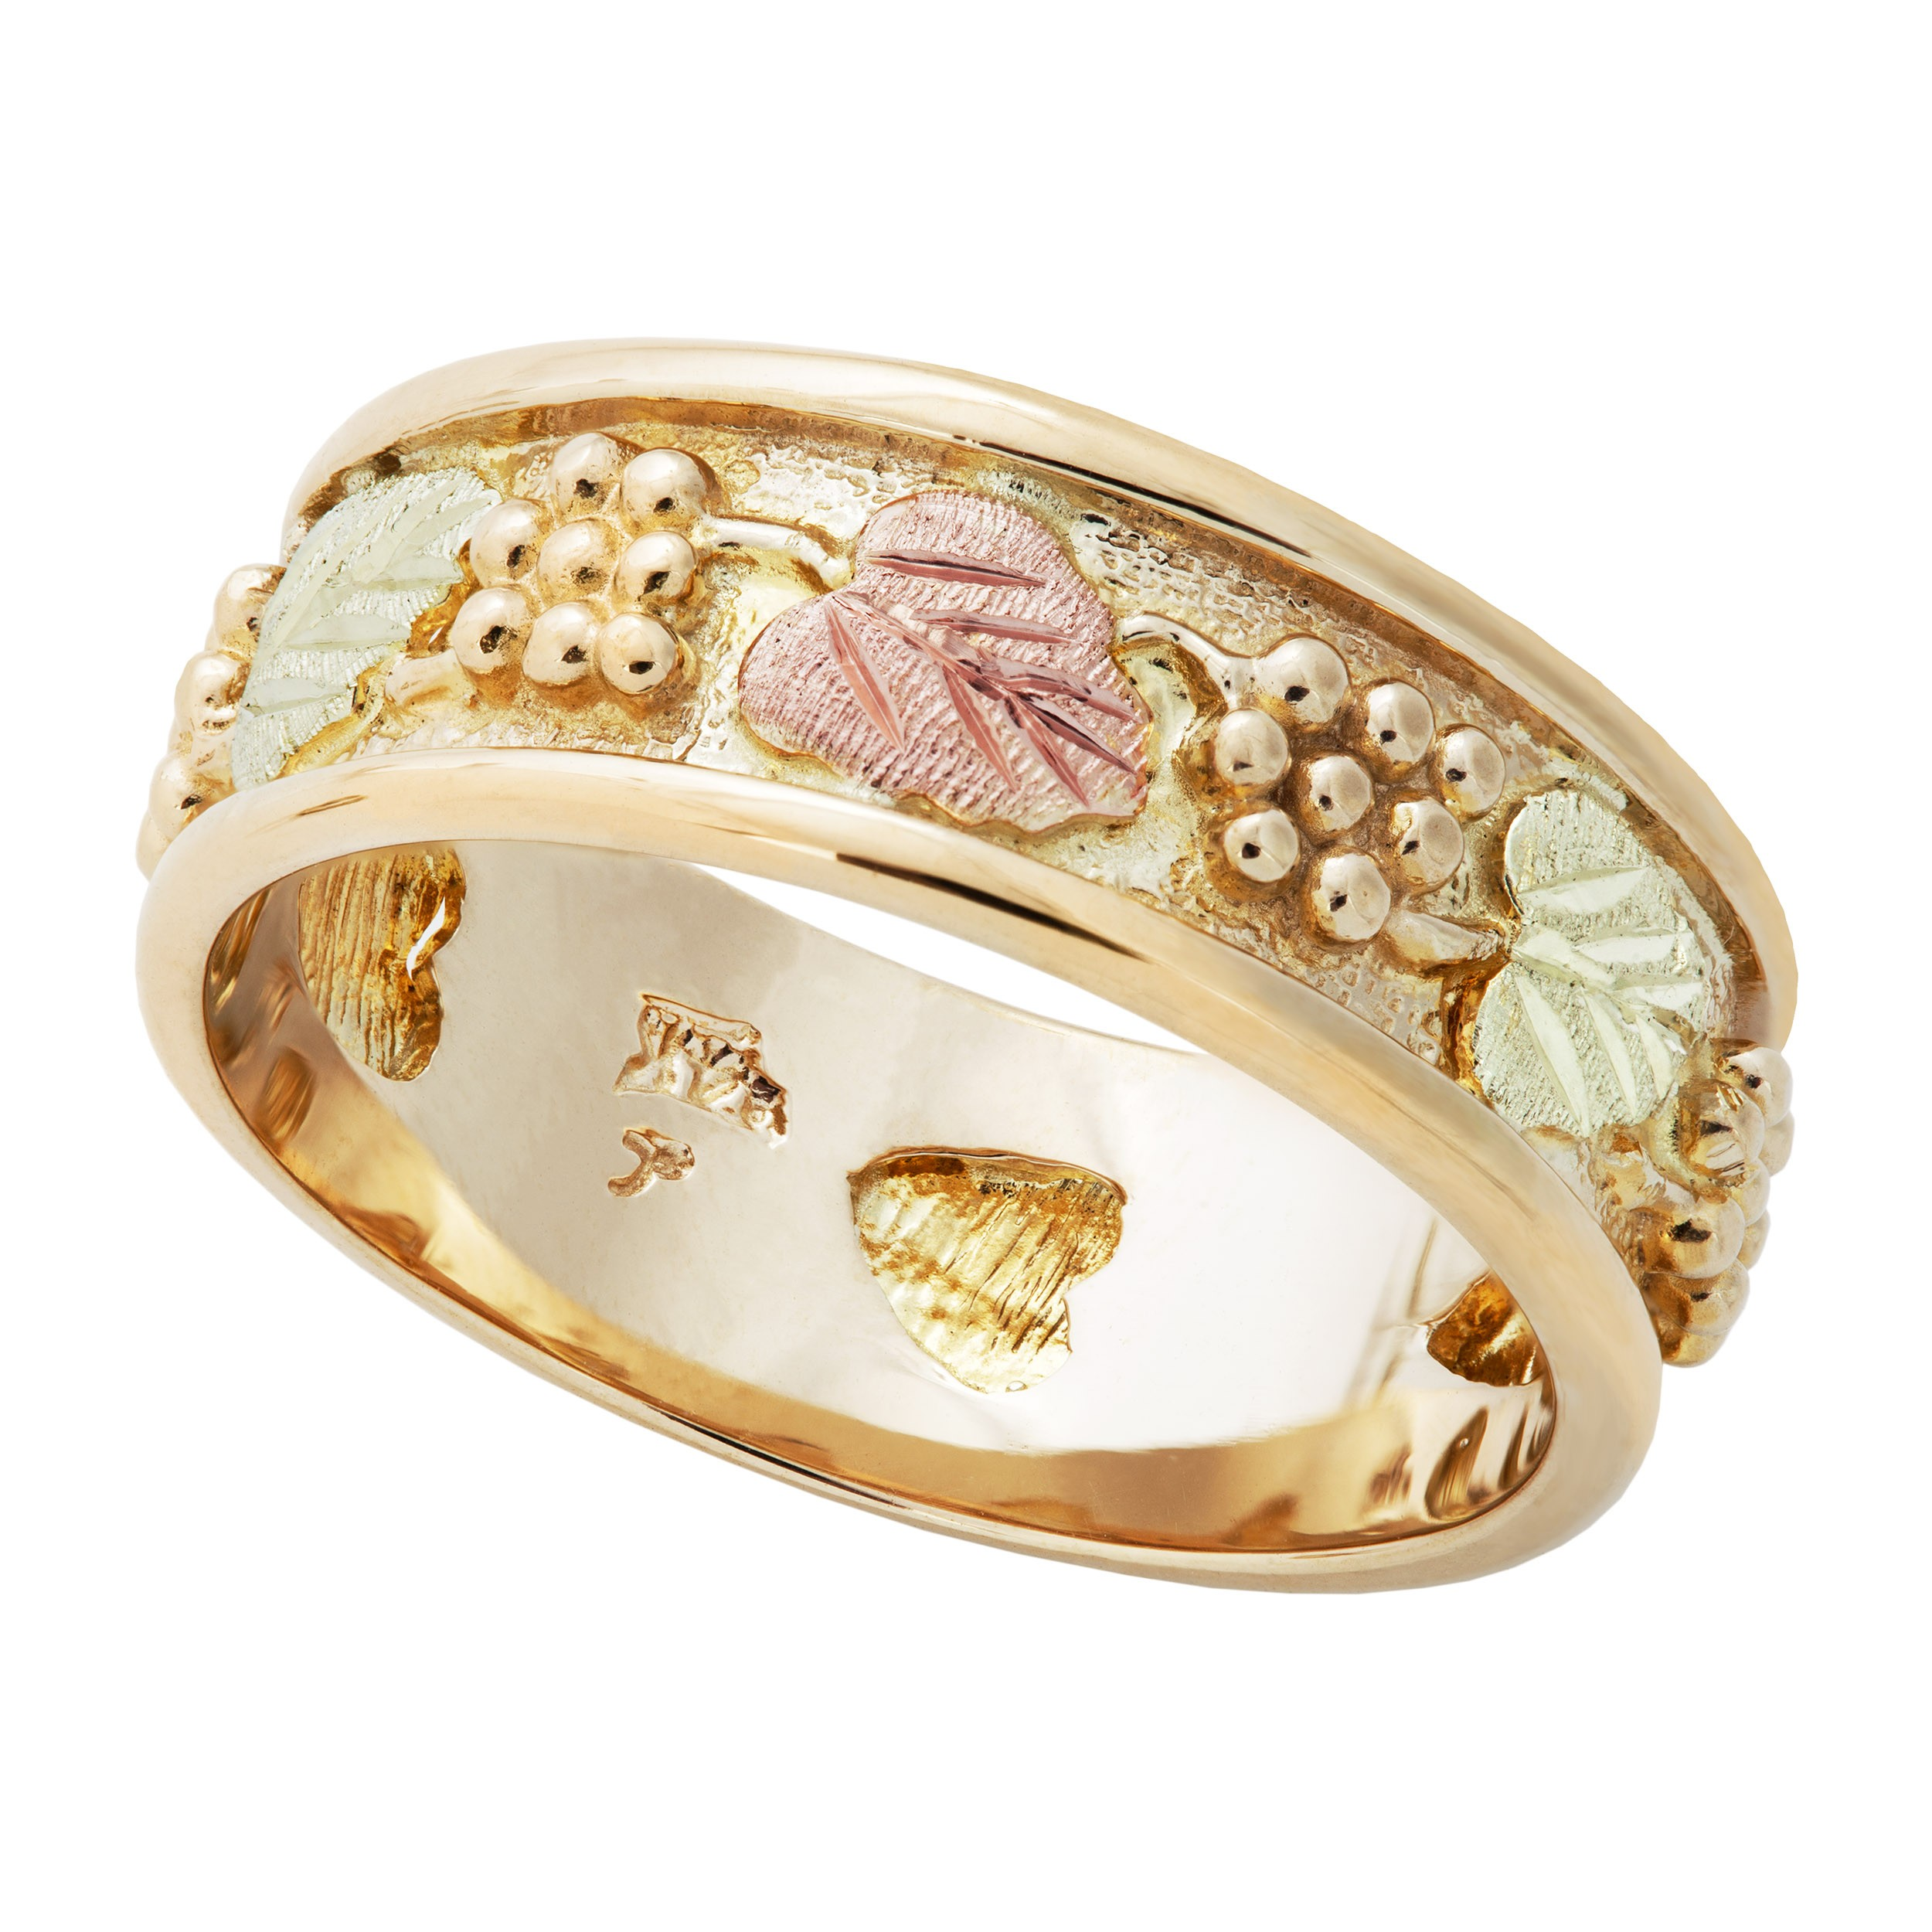 g gold h diamond rings jewelry round ring today overstock shipping watches free miadora wedding tdw product